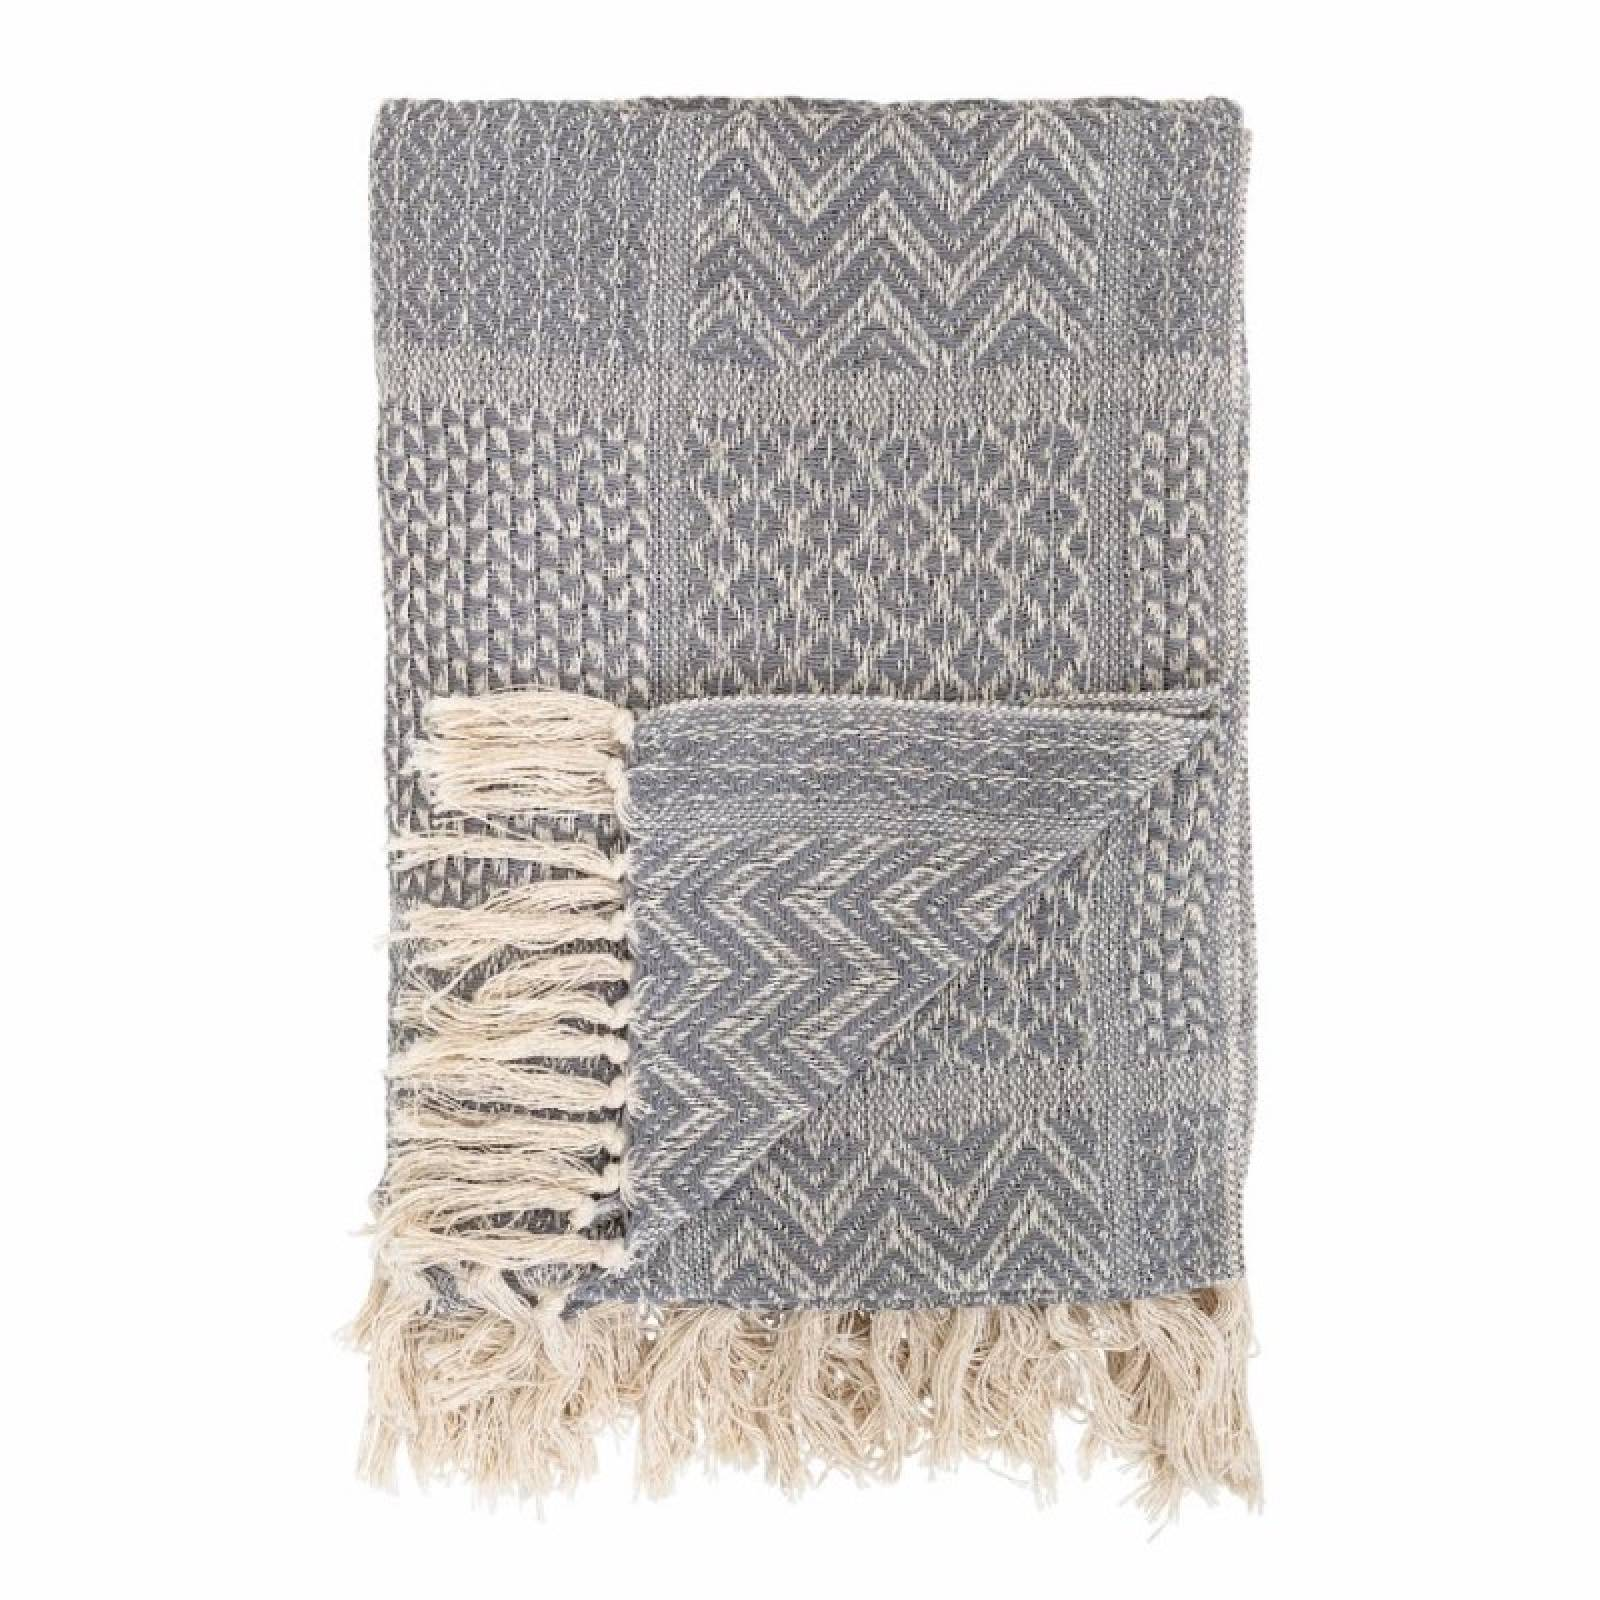 Grey Multi-Patterned Blanket Made From Recycled Cotton thumbnails